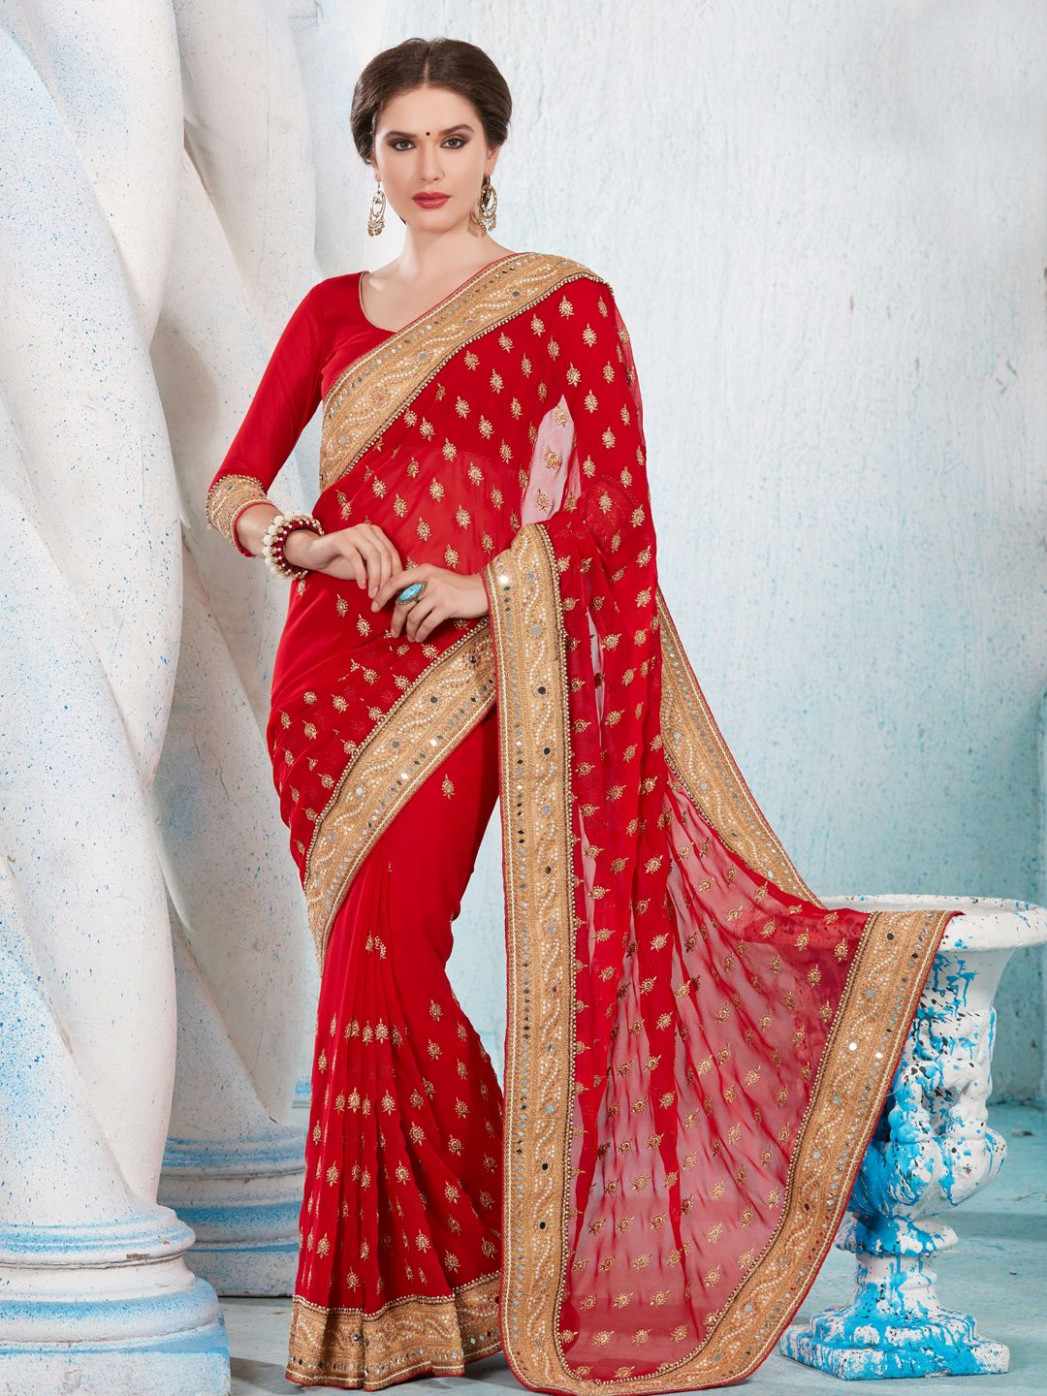 Top 15 Red color sarees you Must Have — G3+ Fashion